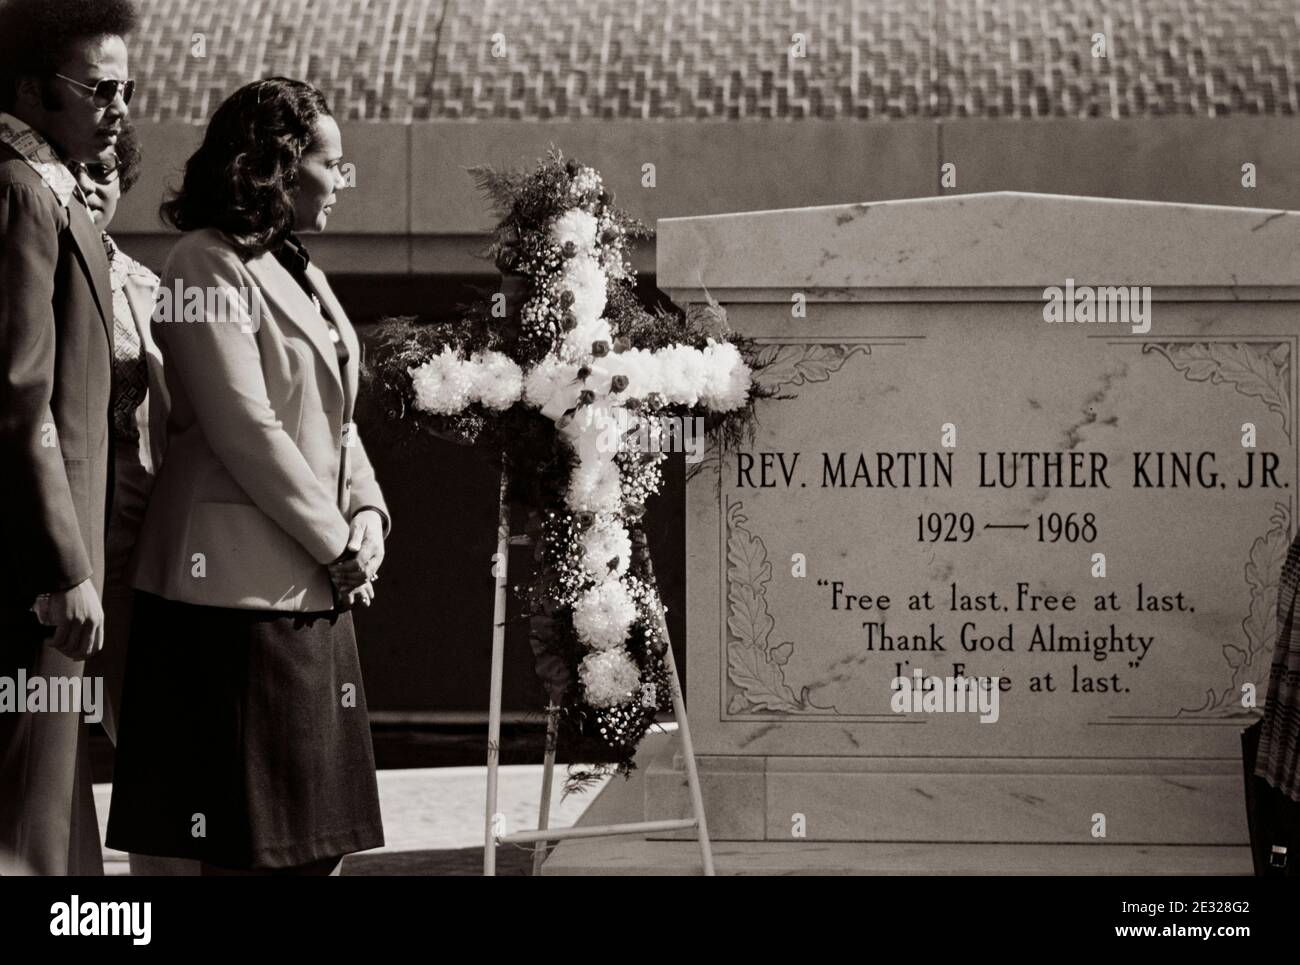 Coretta Scott King, widow of slain civil rights leader Dr. Martin Luther King, Jr., at the tomb of her husband at the King Center in Atlanta, GA. Stock Photo